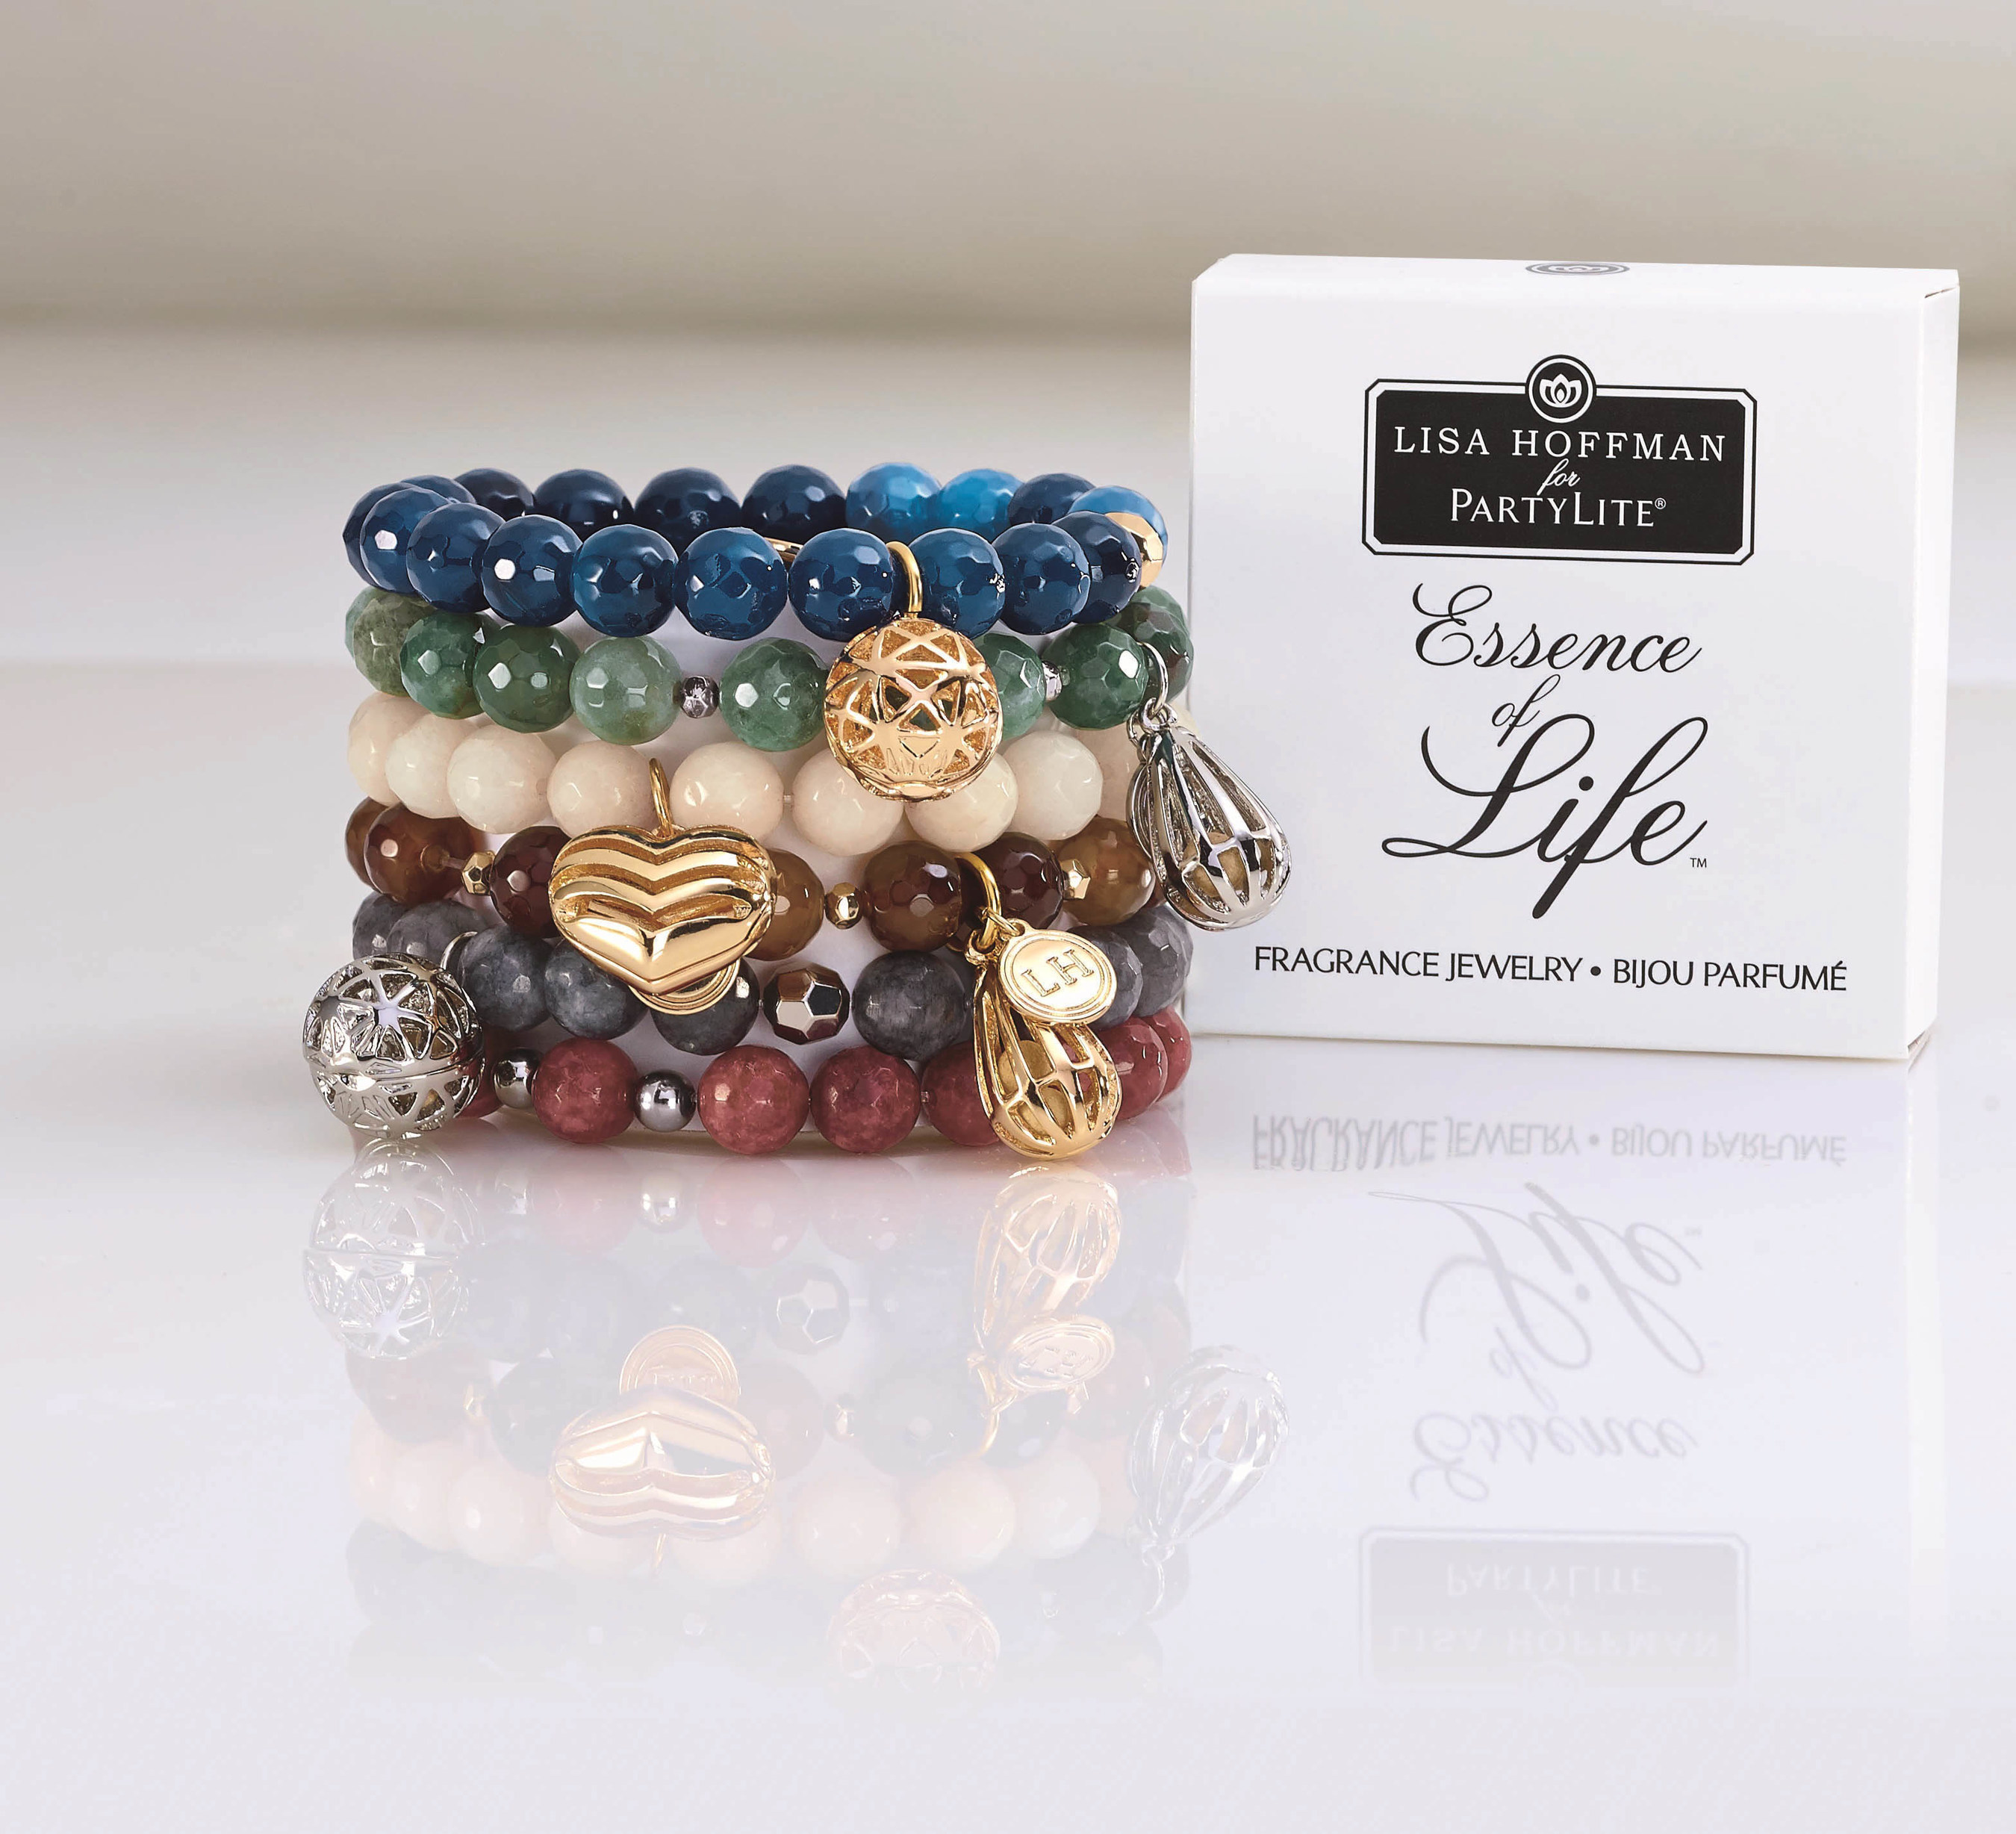 Lisa Hoffman For Partylite Fragrance Jewelry And Essence Of Life